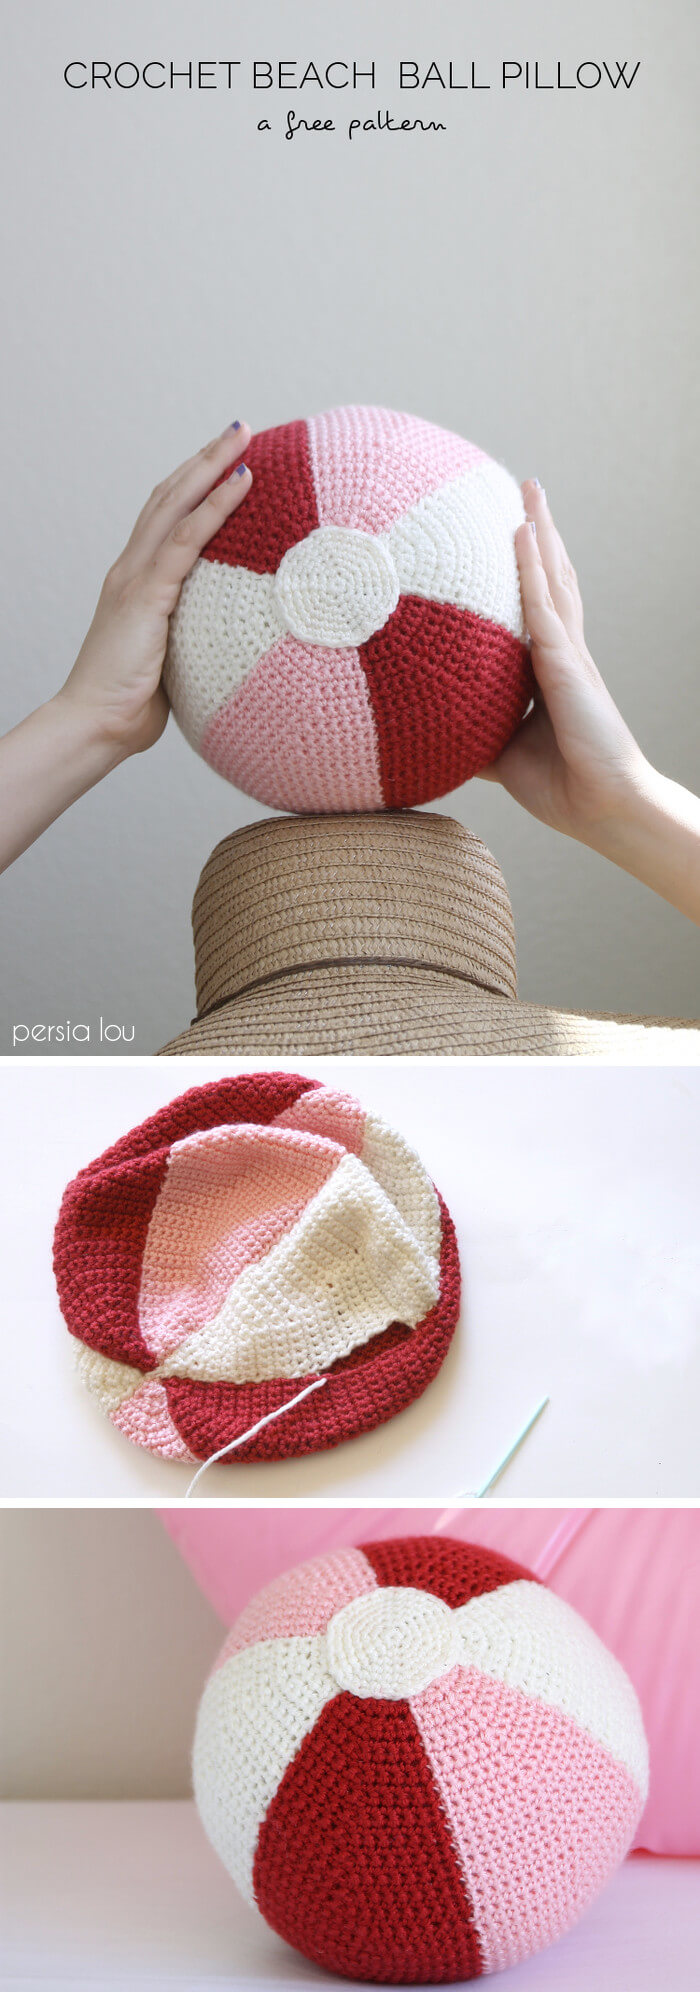 Beach Ball Crochet Pillow - Free Pattern